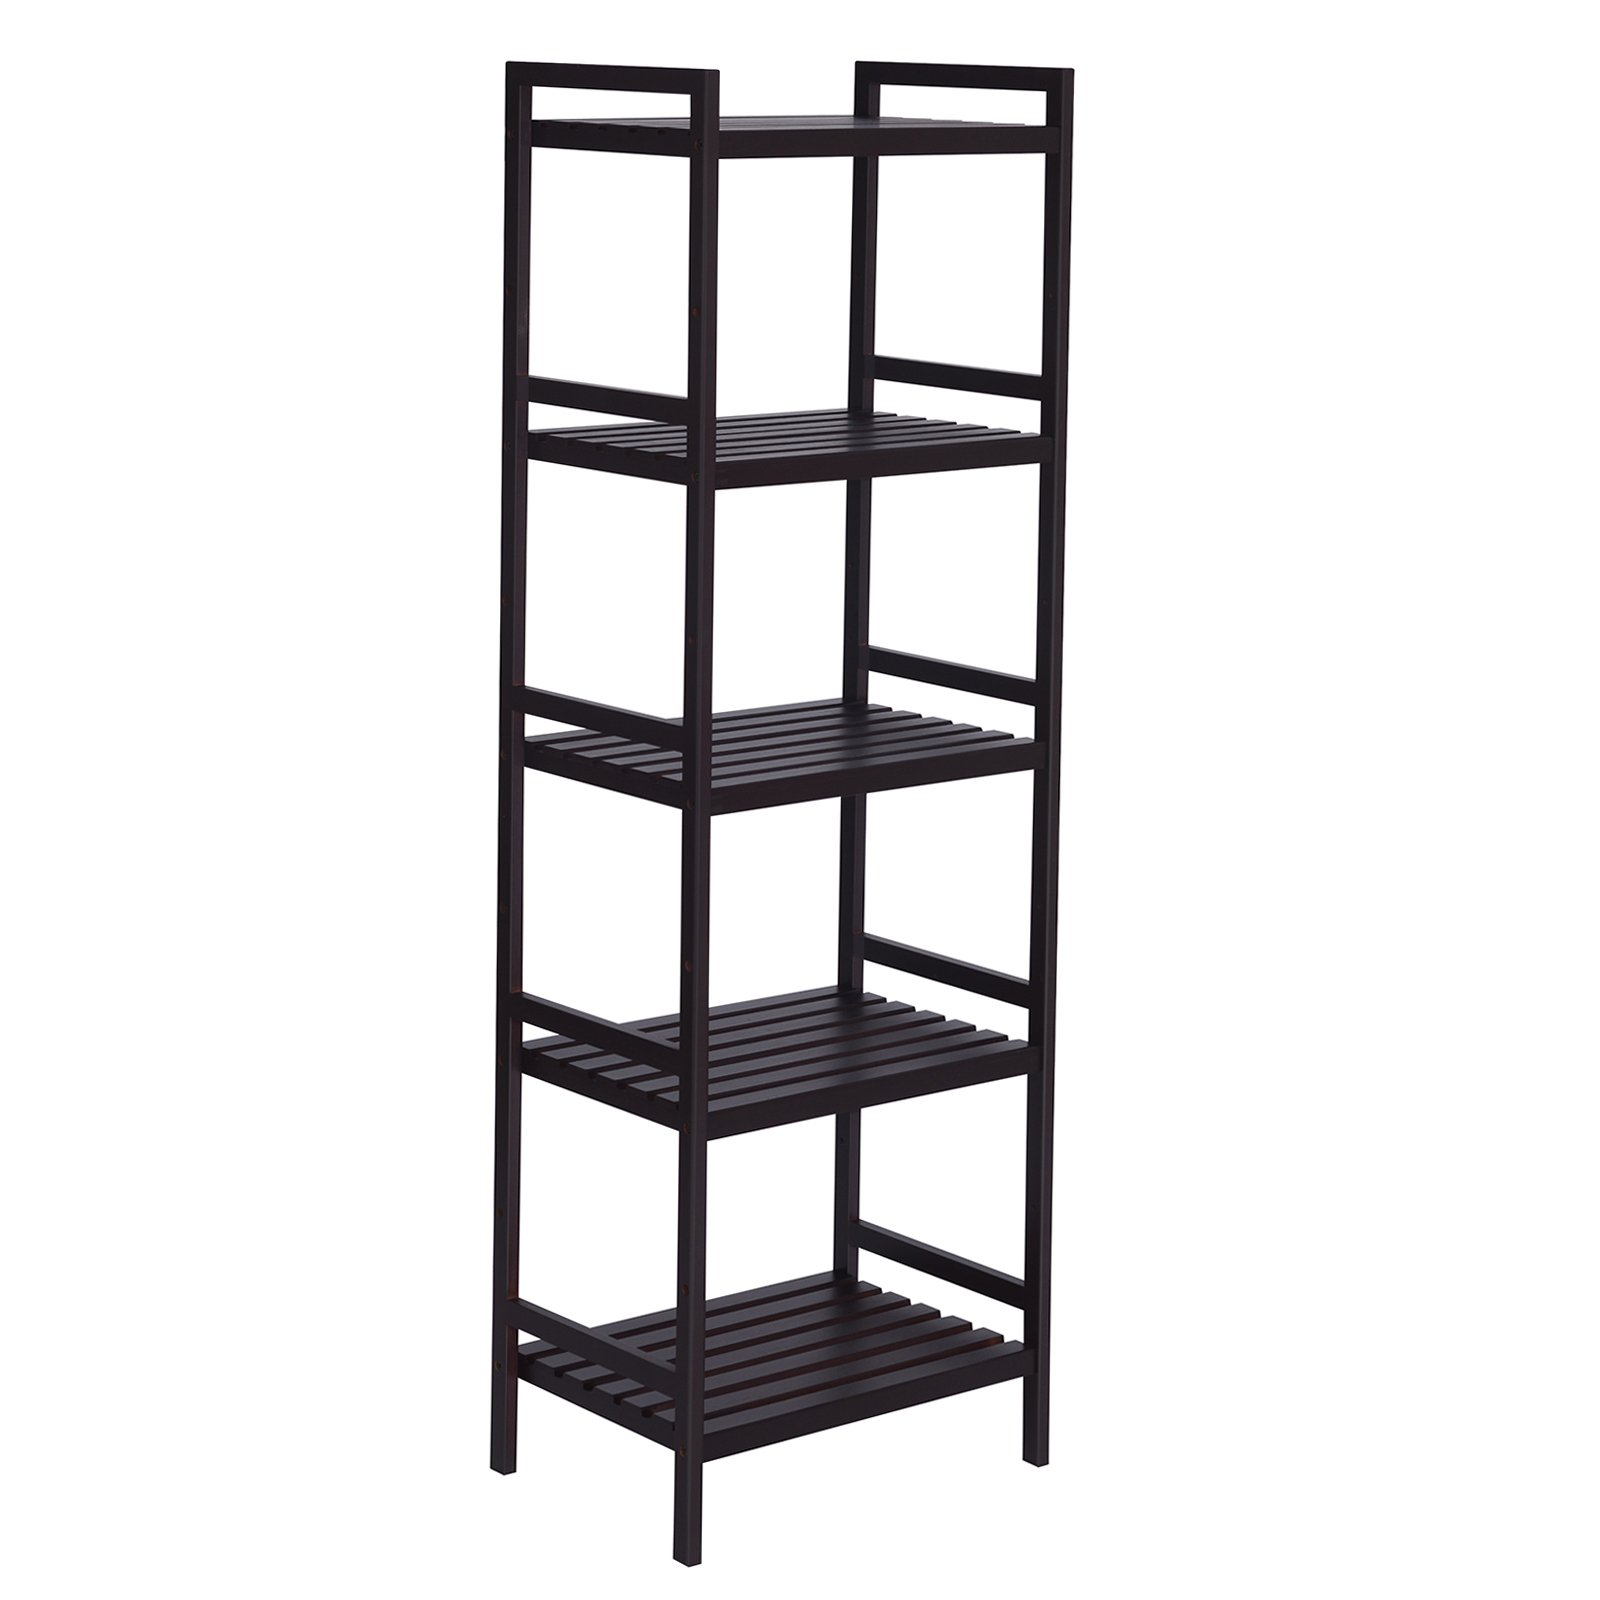 SONGMICS Adjustable Storage Shelf Rack,5-Tier Multifunctional Shelving Unit Stand Tower,Bookcase for Bathroom Living Room Kitchen 17.7 x 12.4 x 55.9, Holds up to 132 lbs Bamboo Brown UBCB75BR